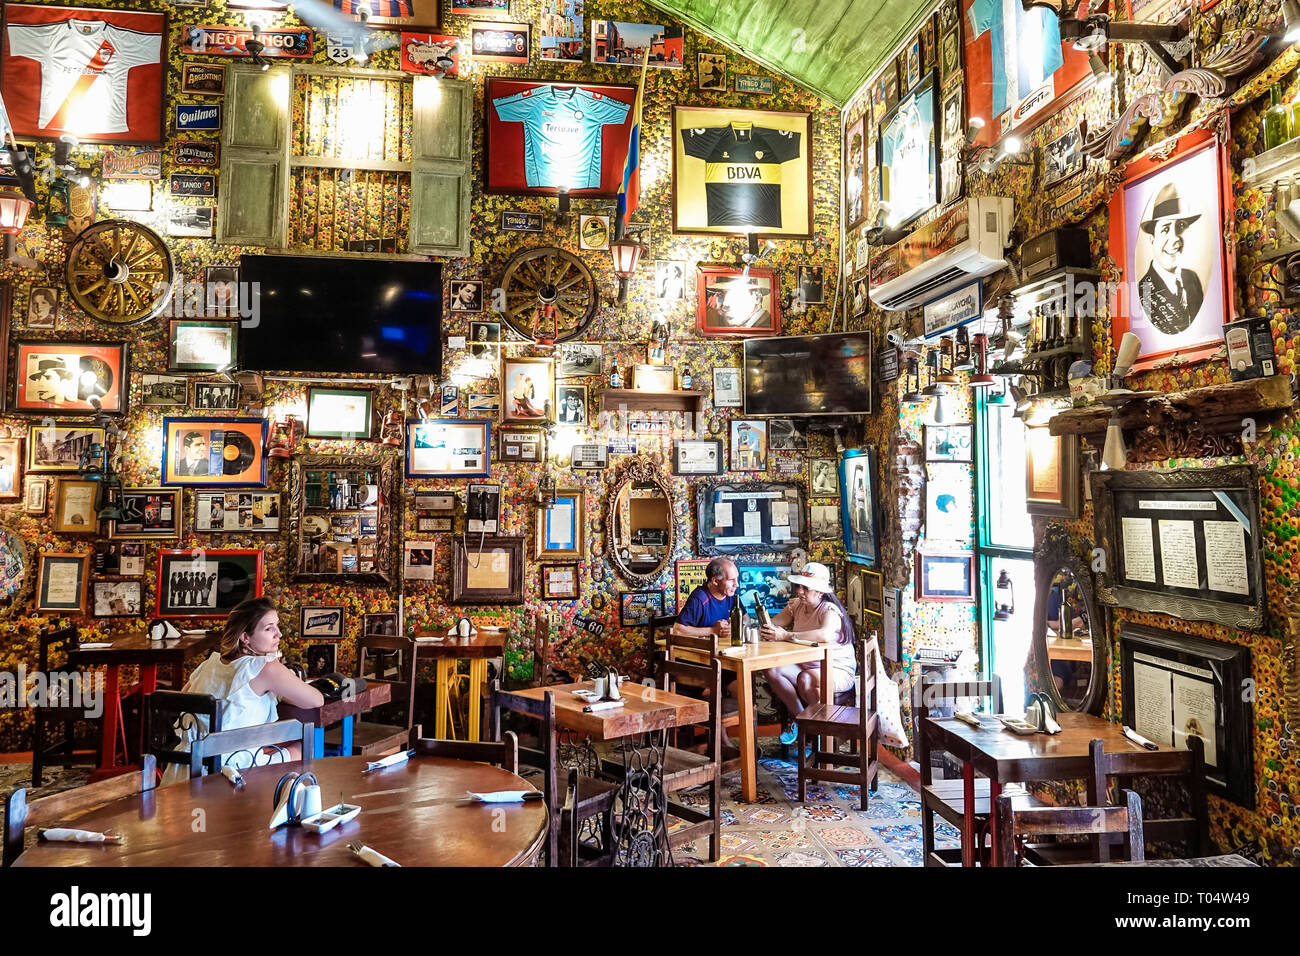 Cartagena Colombia Old Walled City Center centre Centro Marzola Parrilla Argentina restaurant inside unusual eccentric decor tables man woman dining - Stock Image